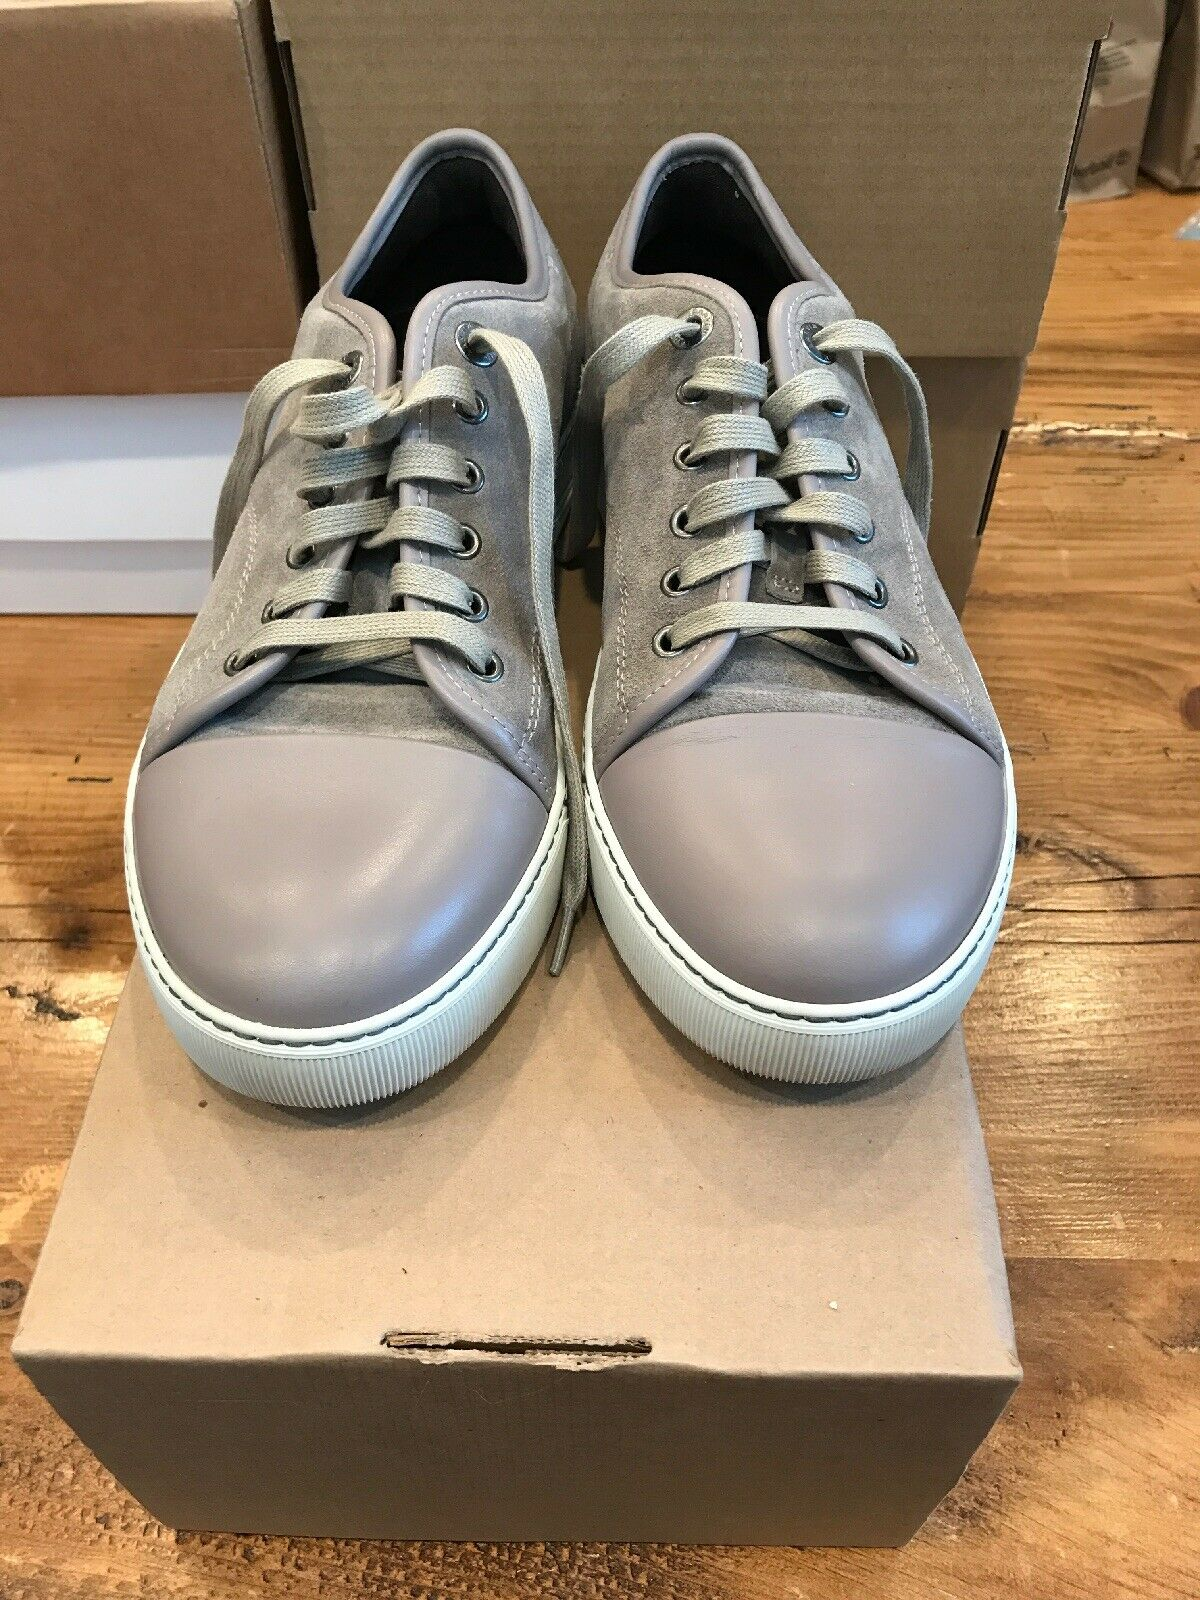 Lanvin Paris Men's Lanvin Sneakers shoes - Size 7